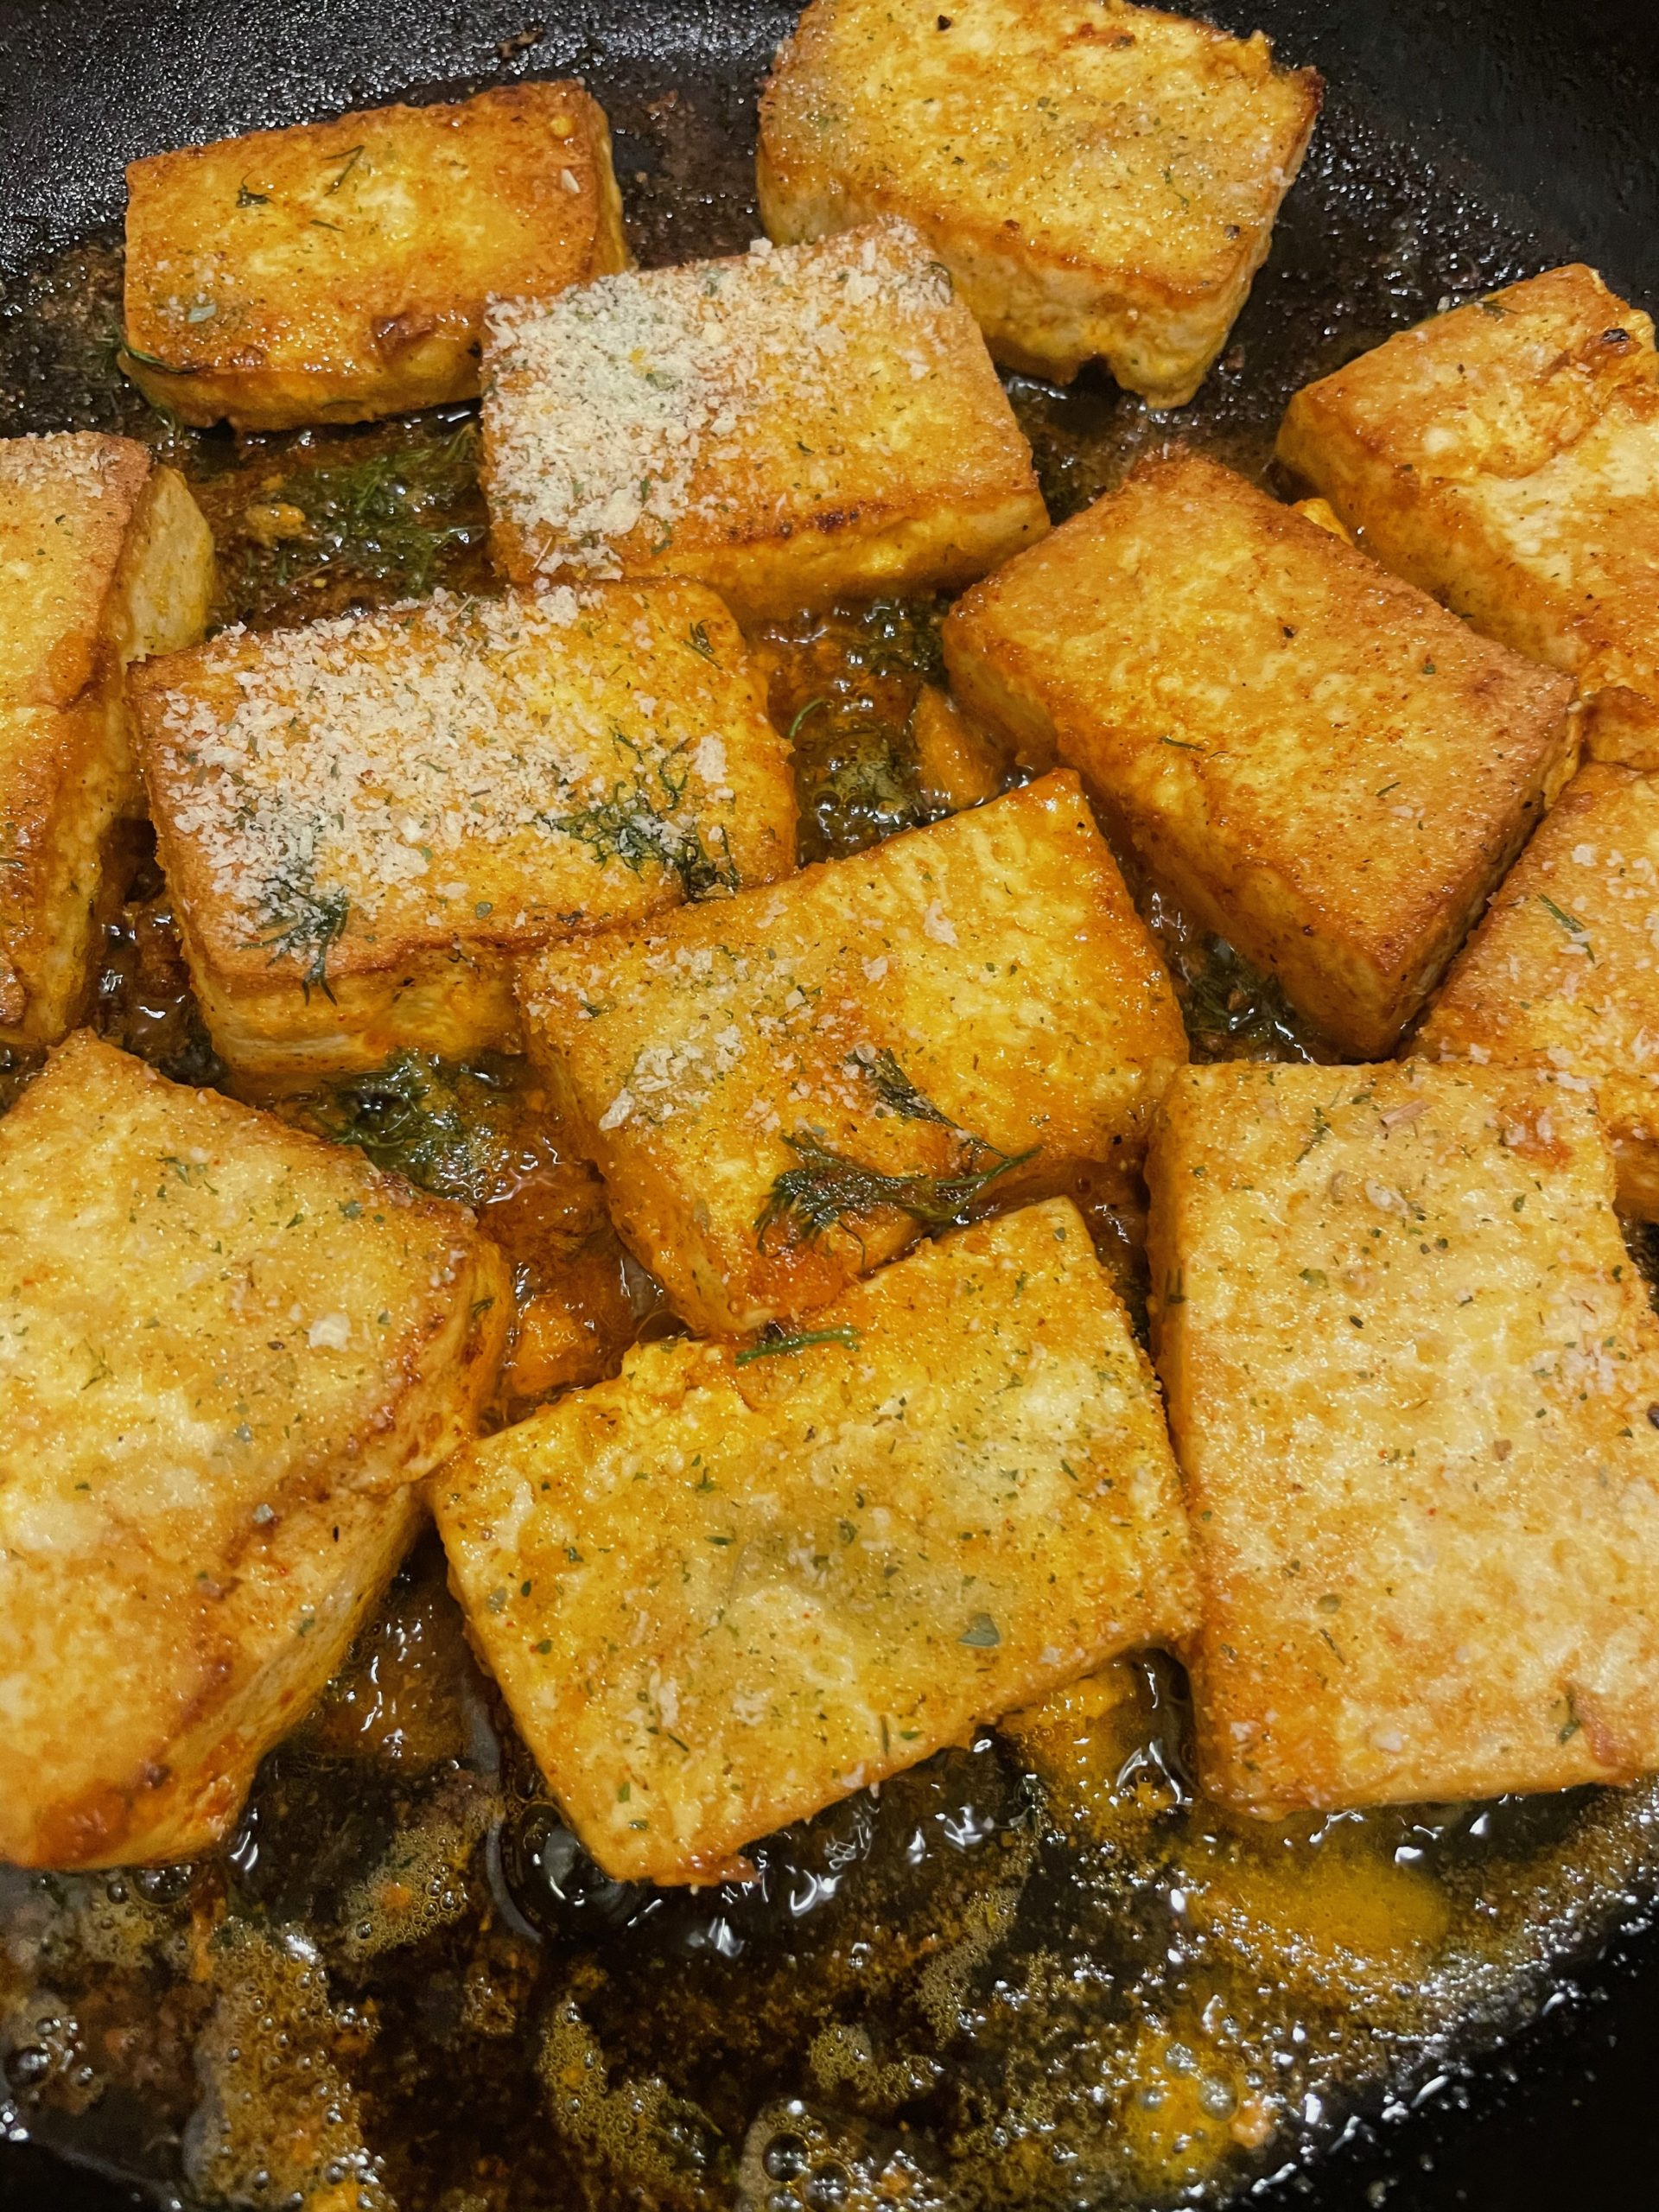 Tofu is frying!